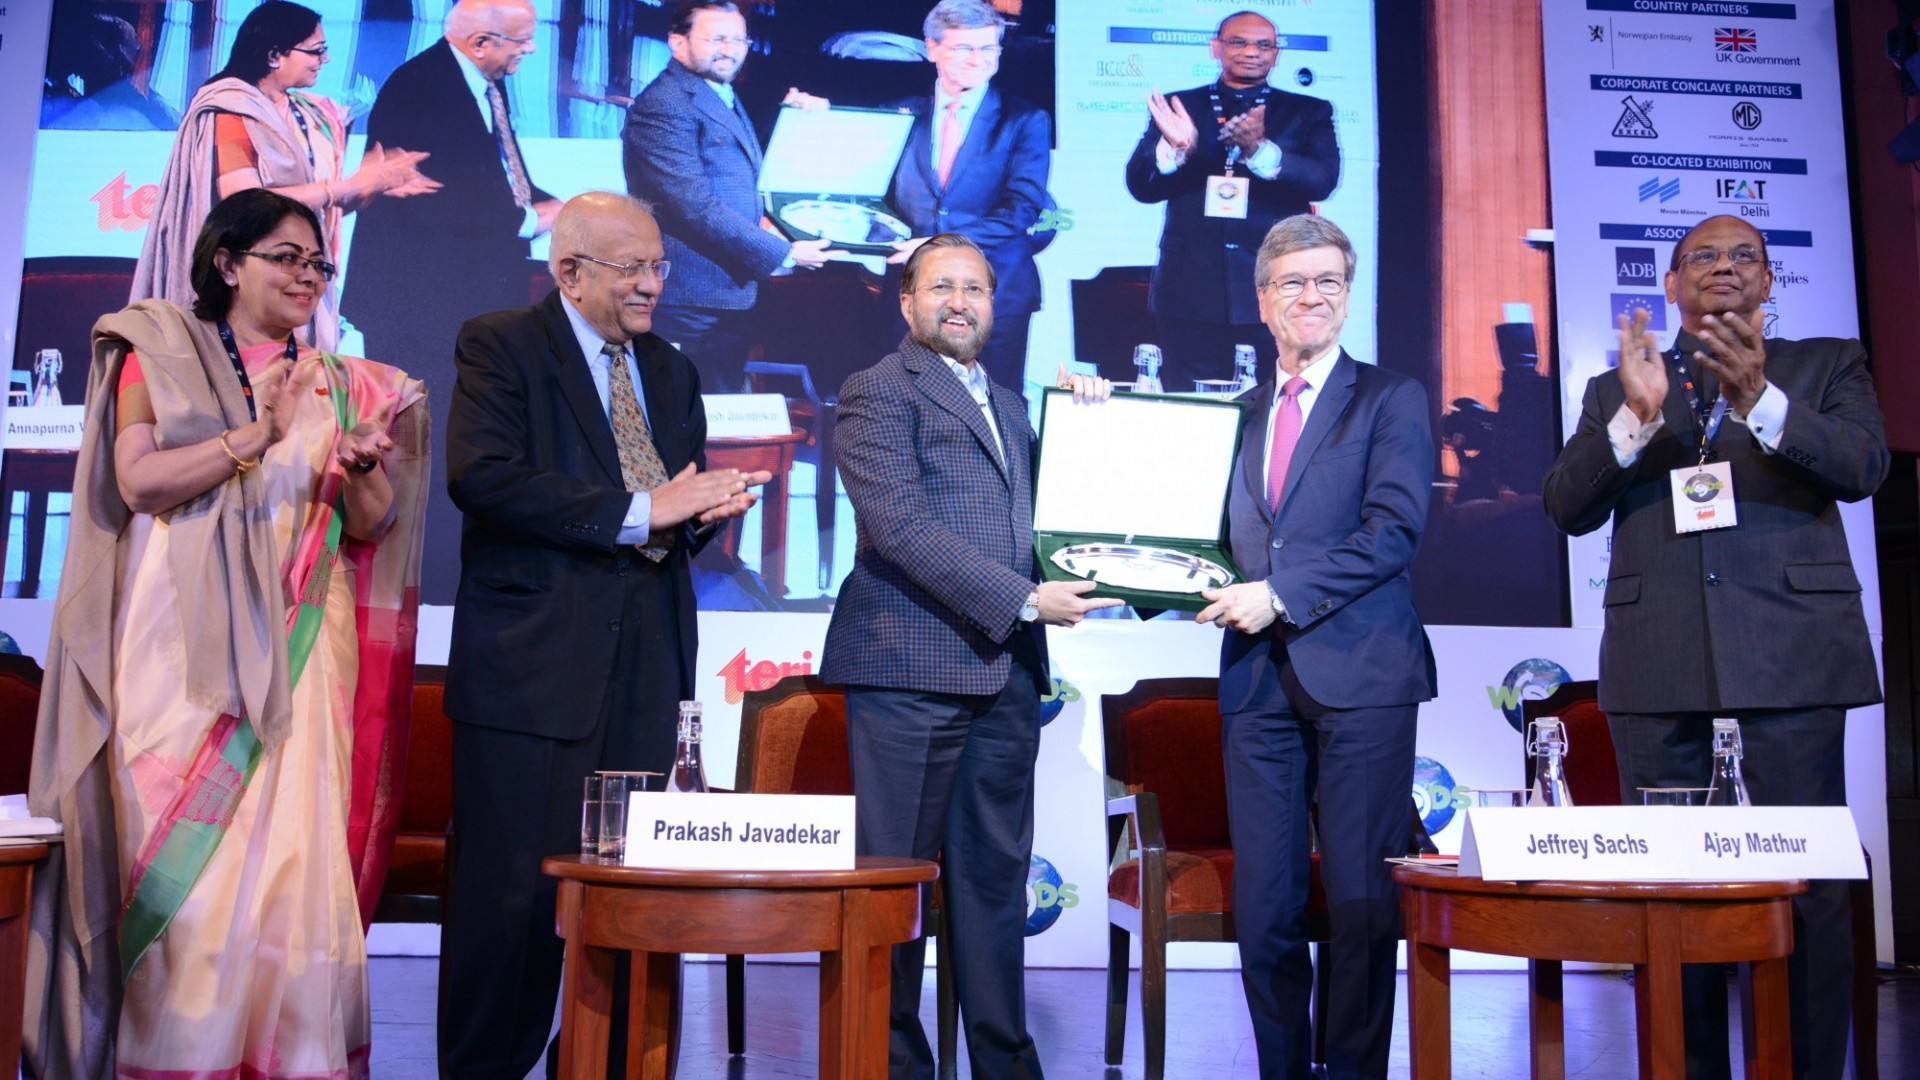 Jeffrey Sachs receives the Sustainable Development Leadership Award at The Energy and Resources Institute's (TERI) World Sustainable Development Summit, India